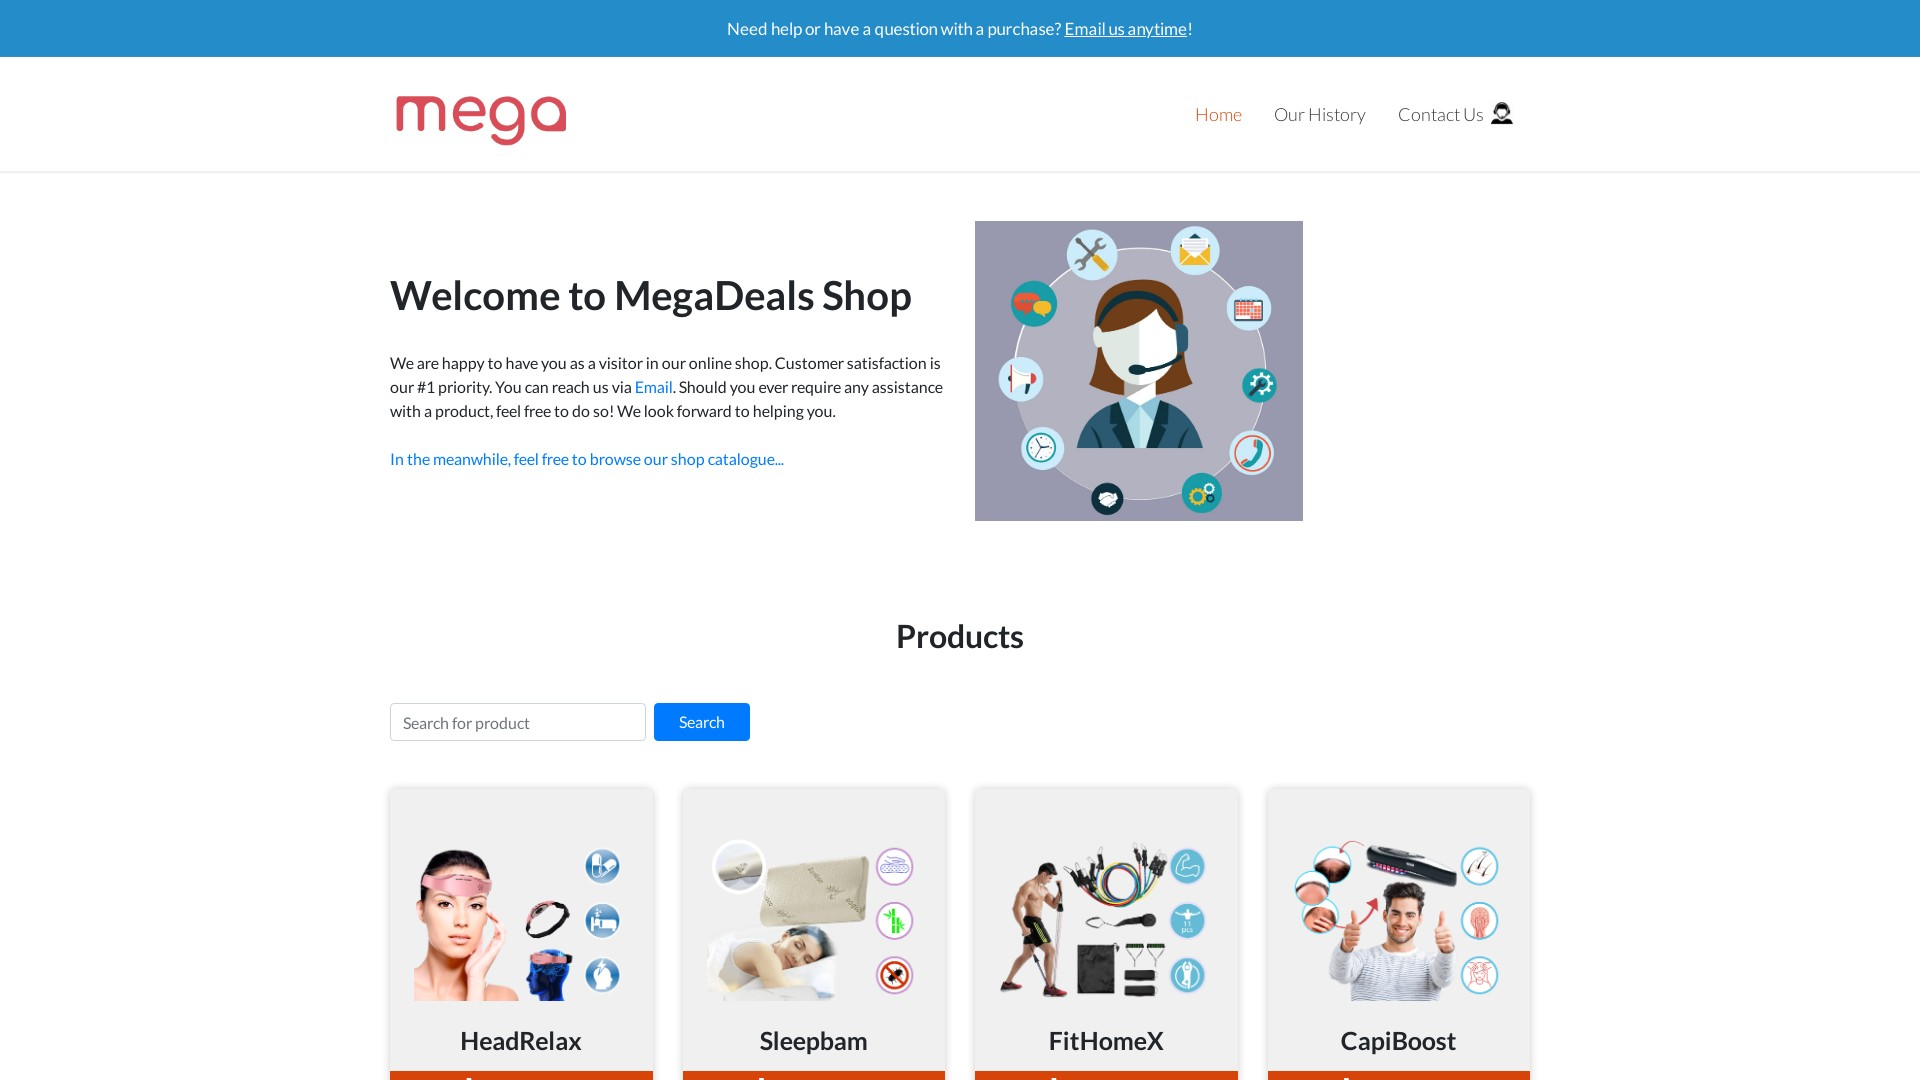 Is Megadeals Ltd a Scam? Review of the Online Store